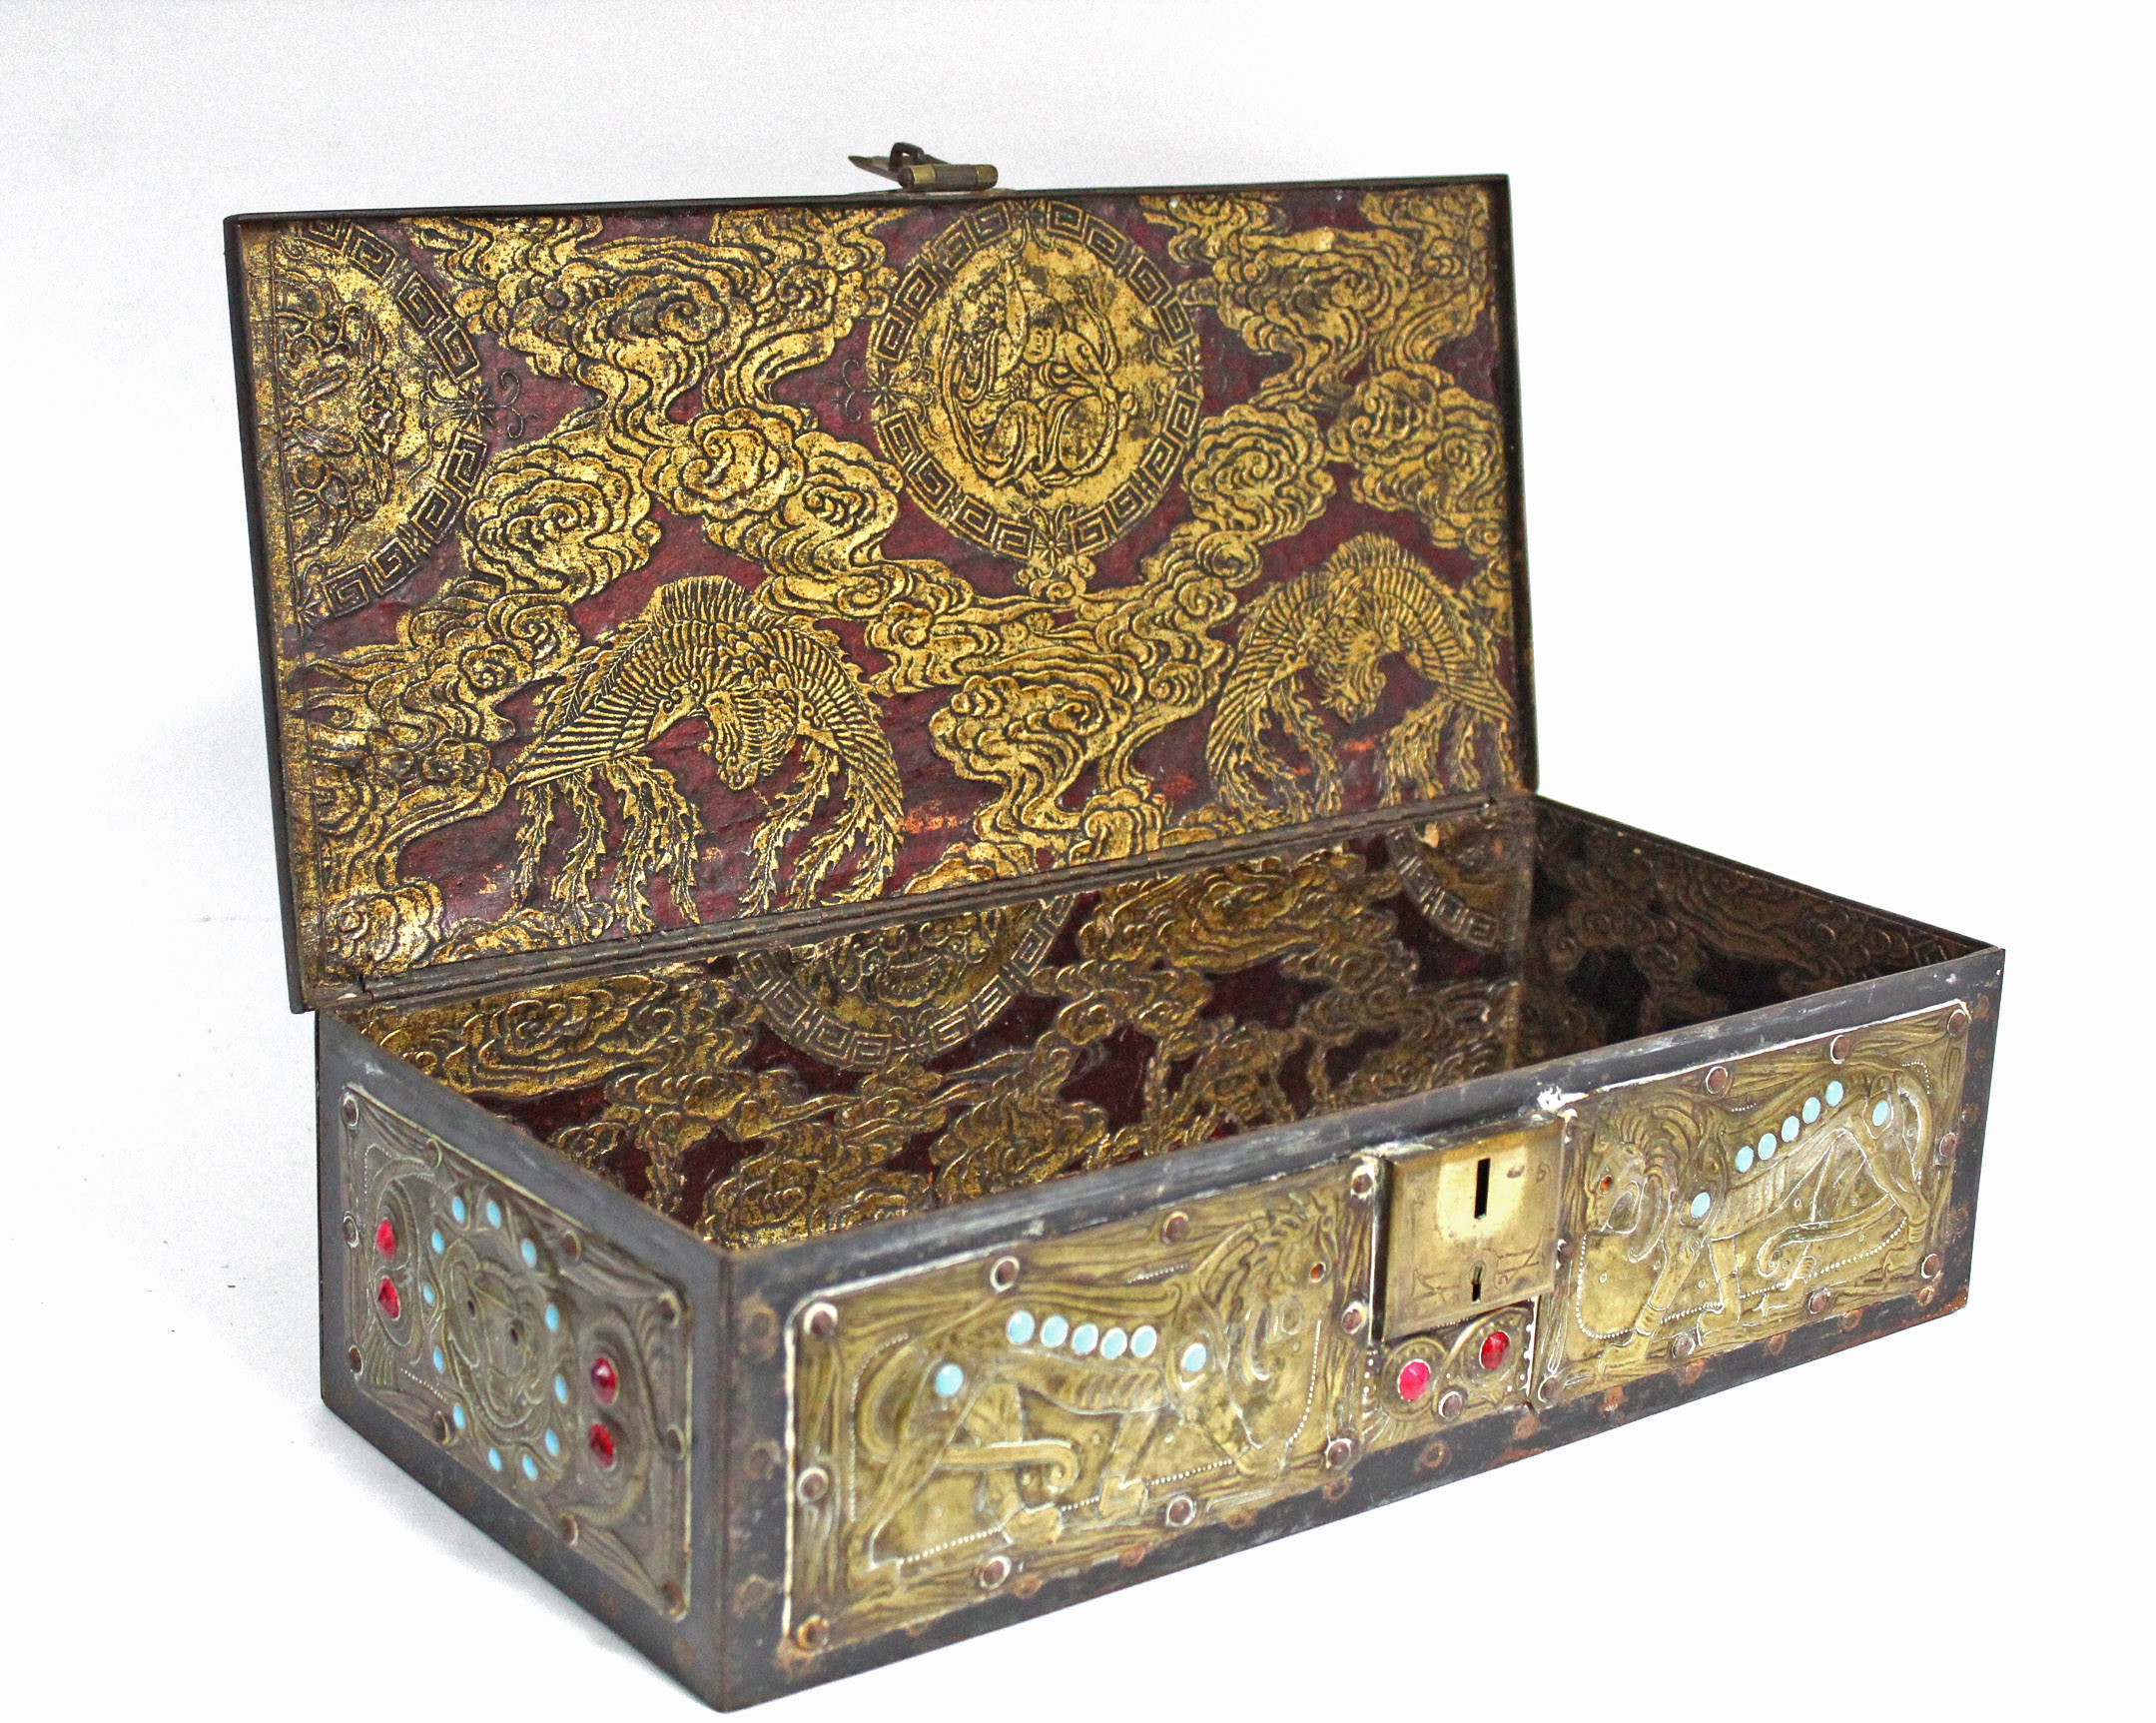 Lot 194 - A FRENCH EMBOSSED BRASS & BLUE STEEL RECTANGULAR CASKET in the late medieval style, & in the